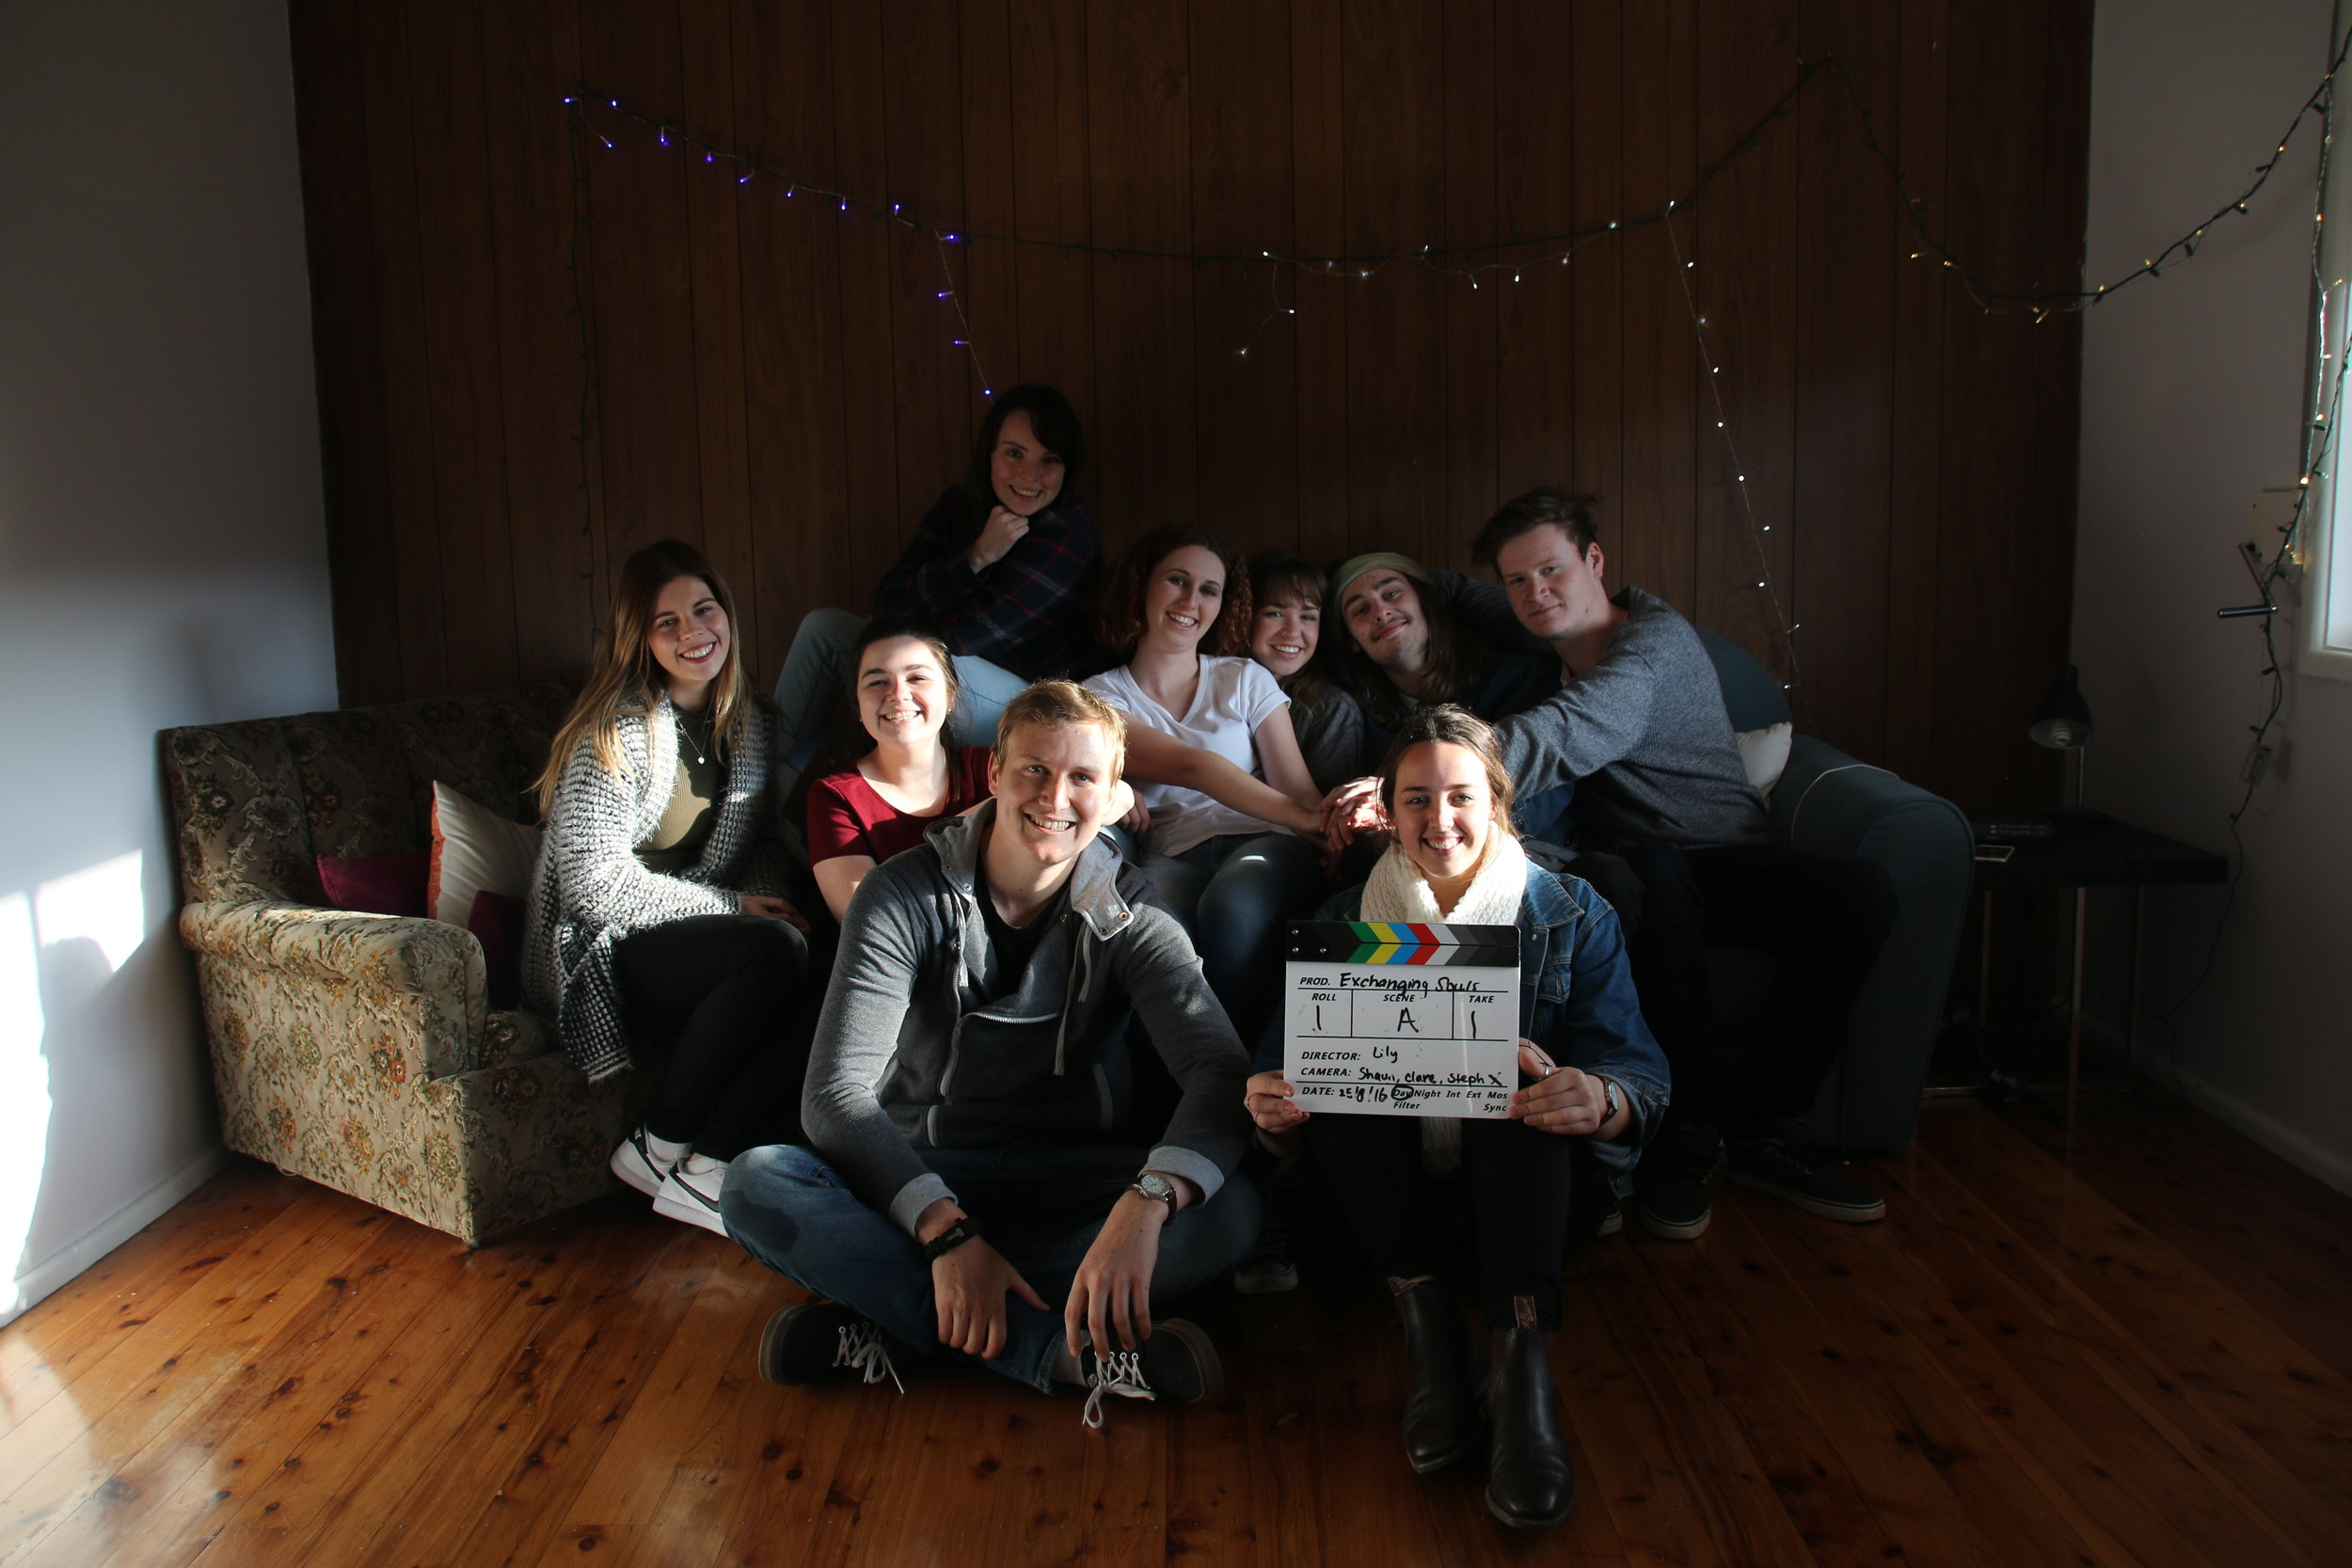 Our Team on the Day of Shooting